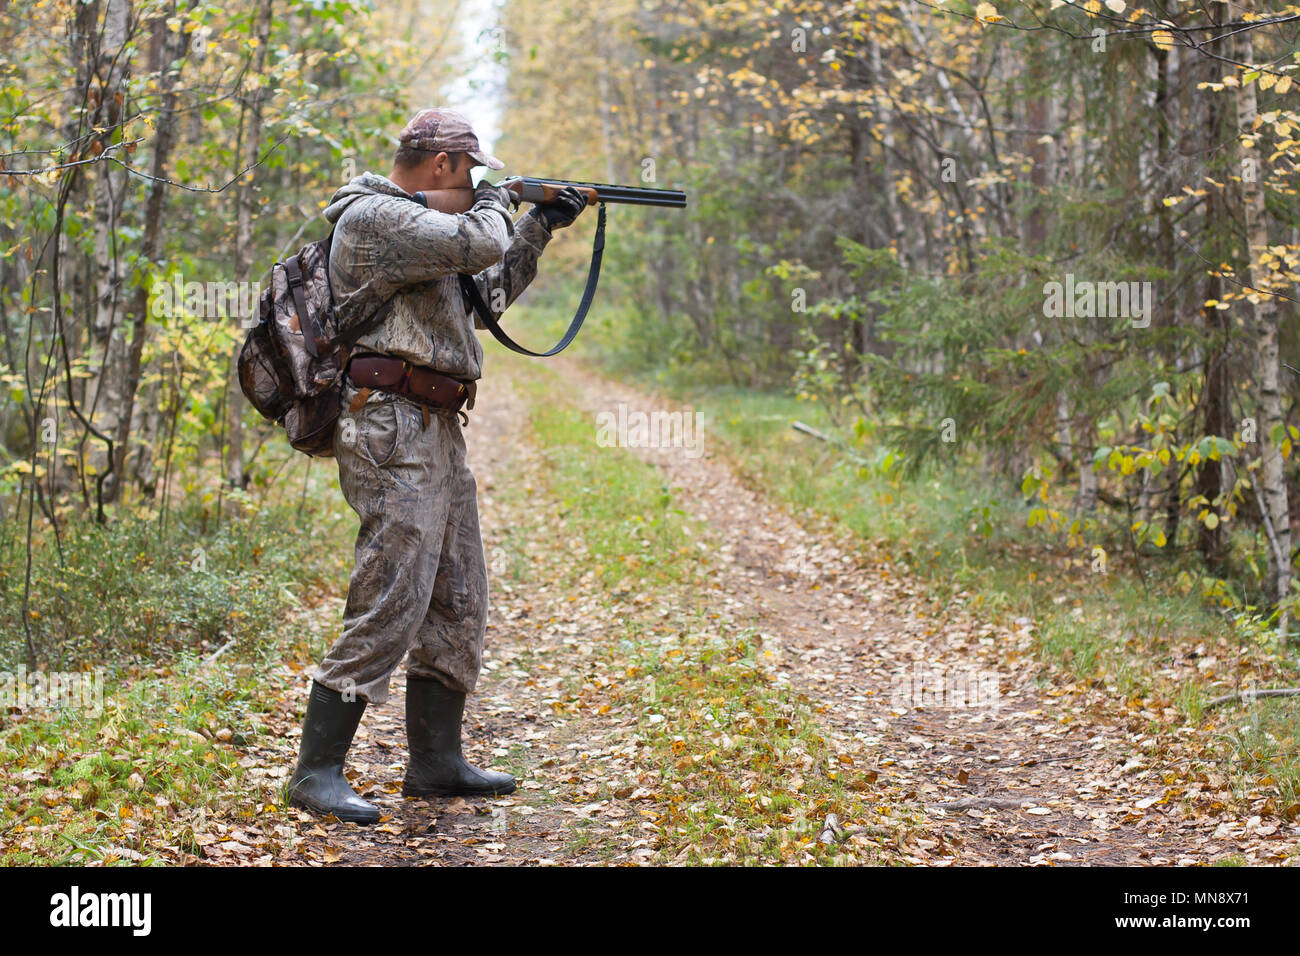 hunter taking aim from a shotgun in the wildfowl - Stock Image